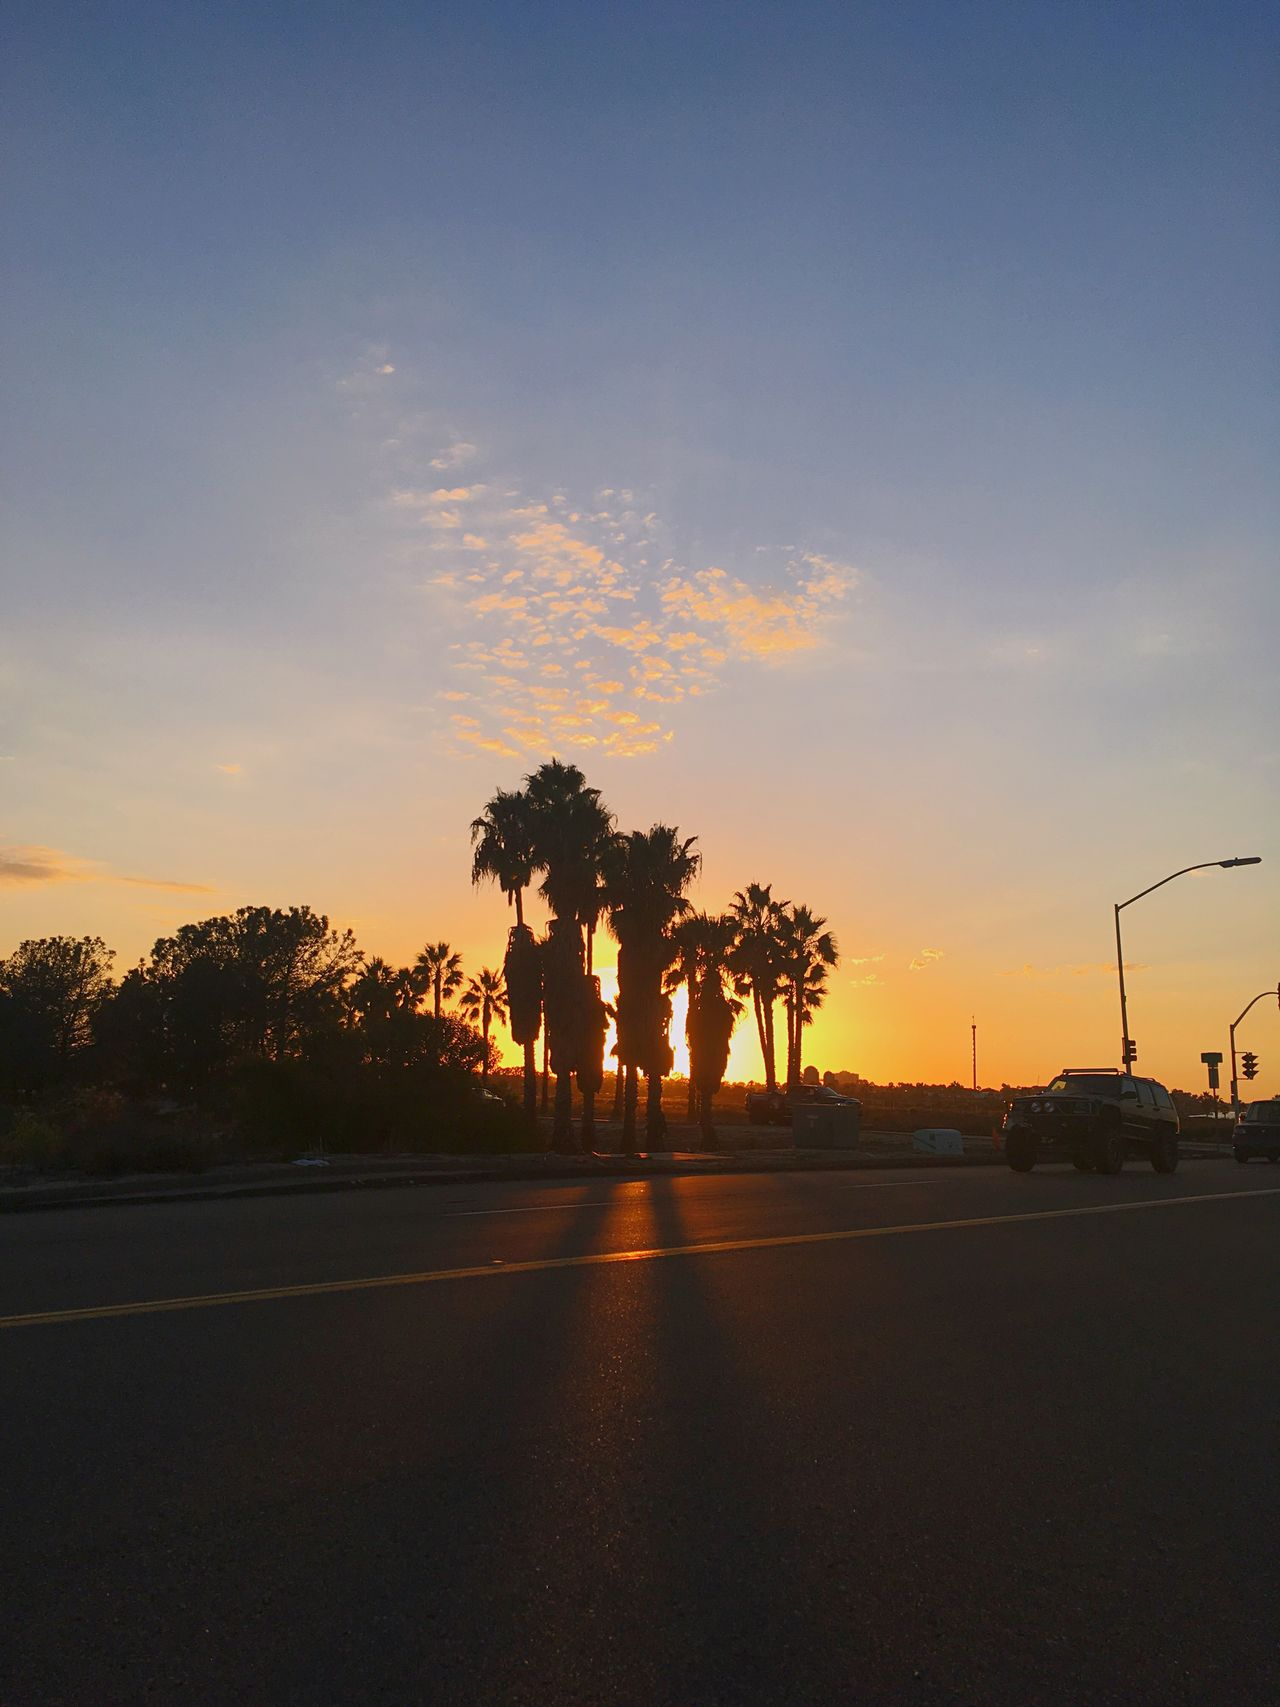 Sunset Tree Transportation Road Car Mode Of Transport Street Land Vehicle Sky Silhouette Nature No People Palm Tree Outdoors Beauty In Nature The Way Forward Scenics Day Taking Photos Hello World Check This Out Beach Vacations Open Edit